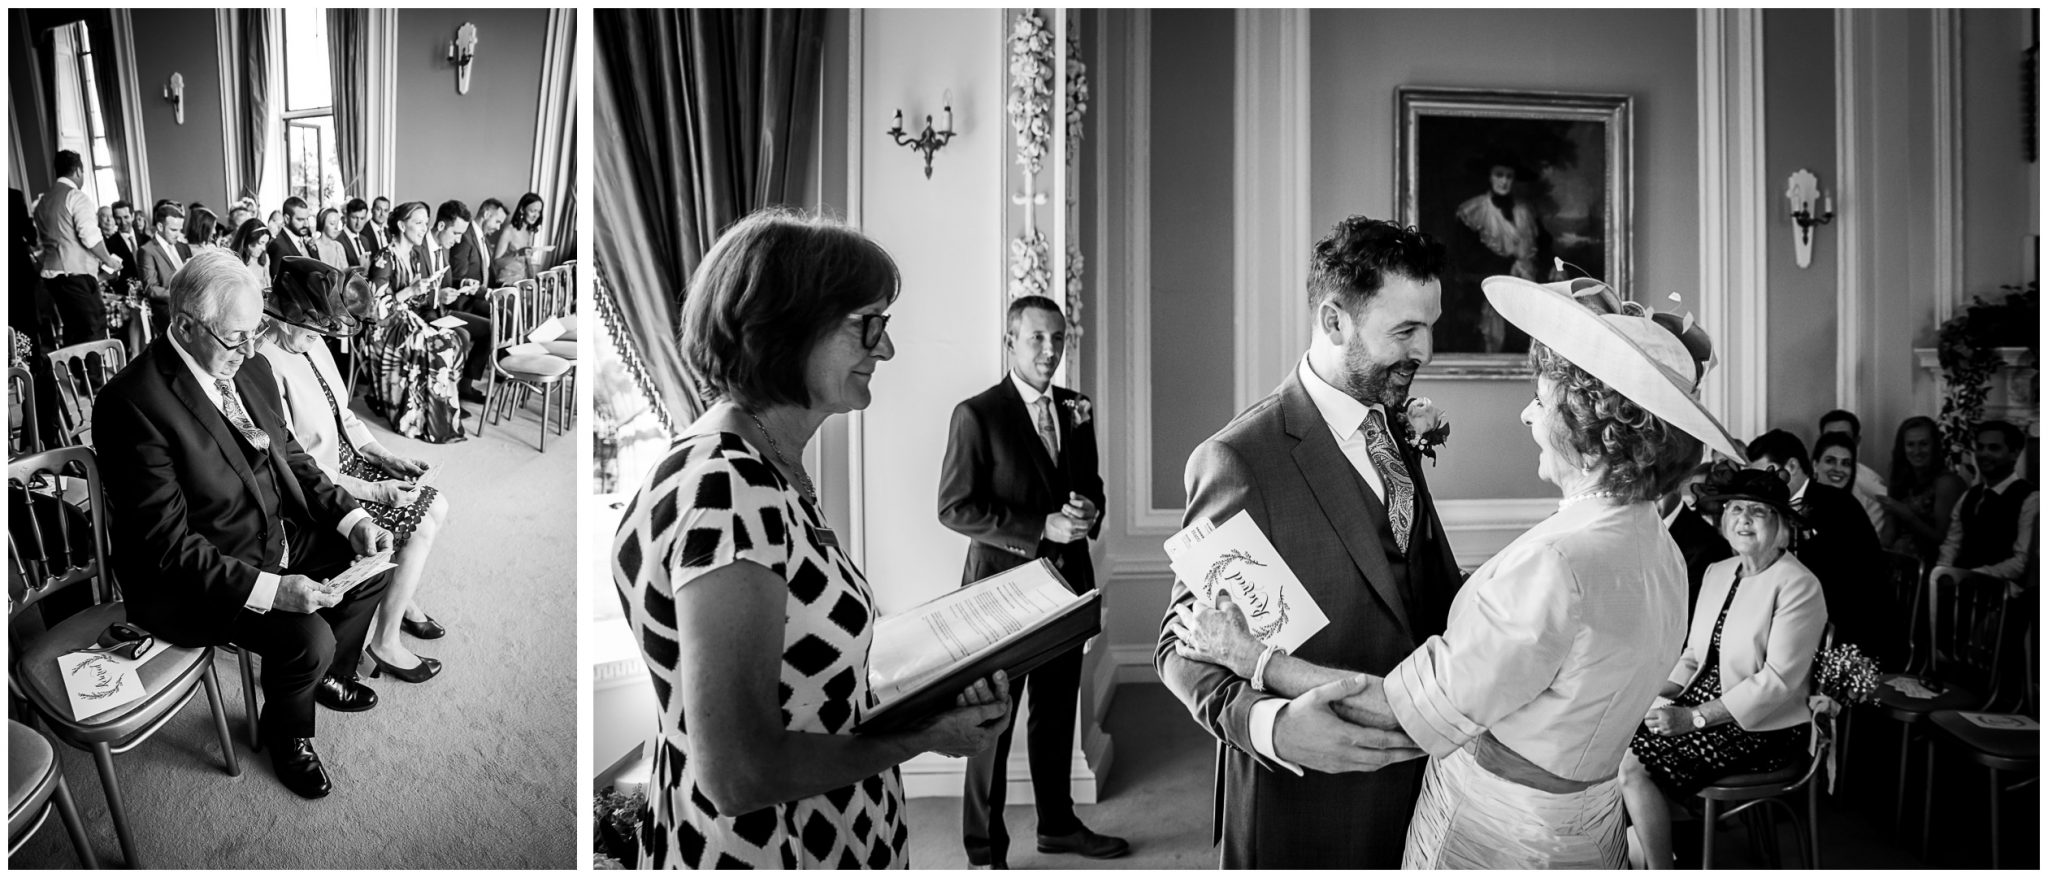 Black and white photo of wedding guests waiting in the ceremony room